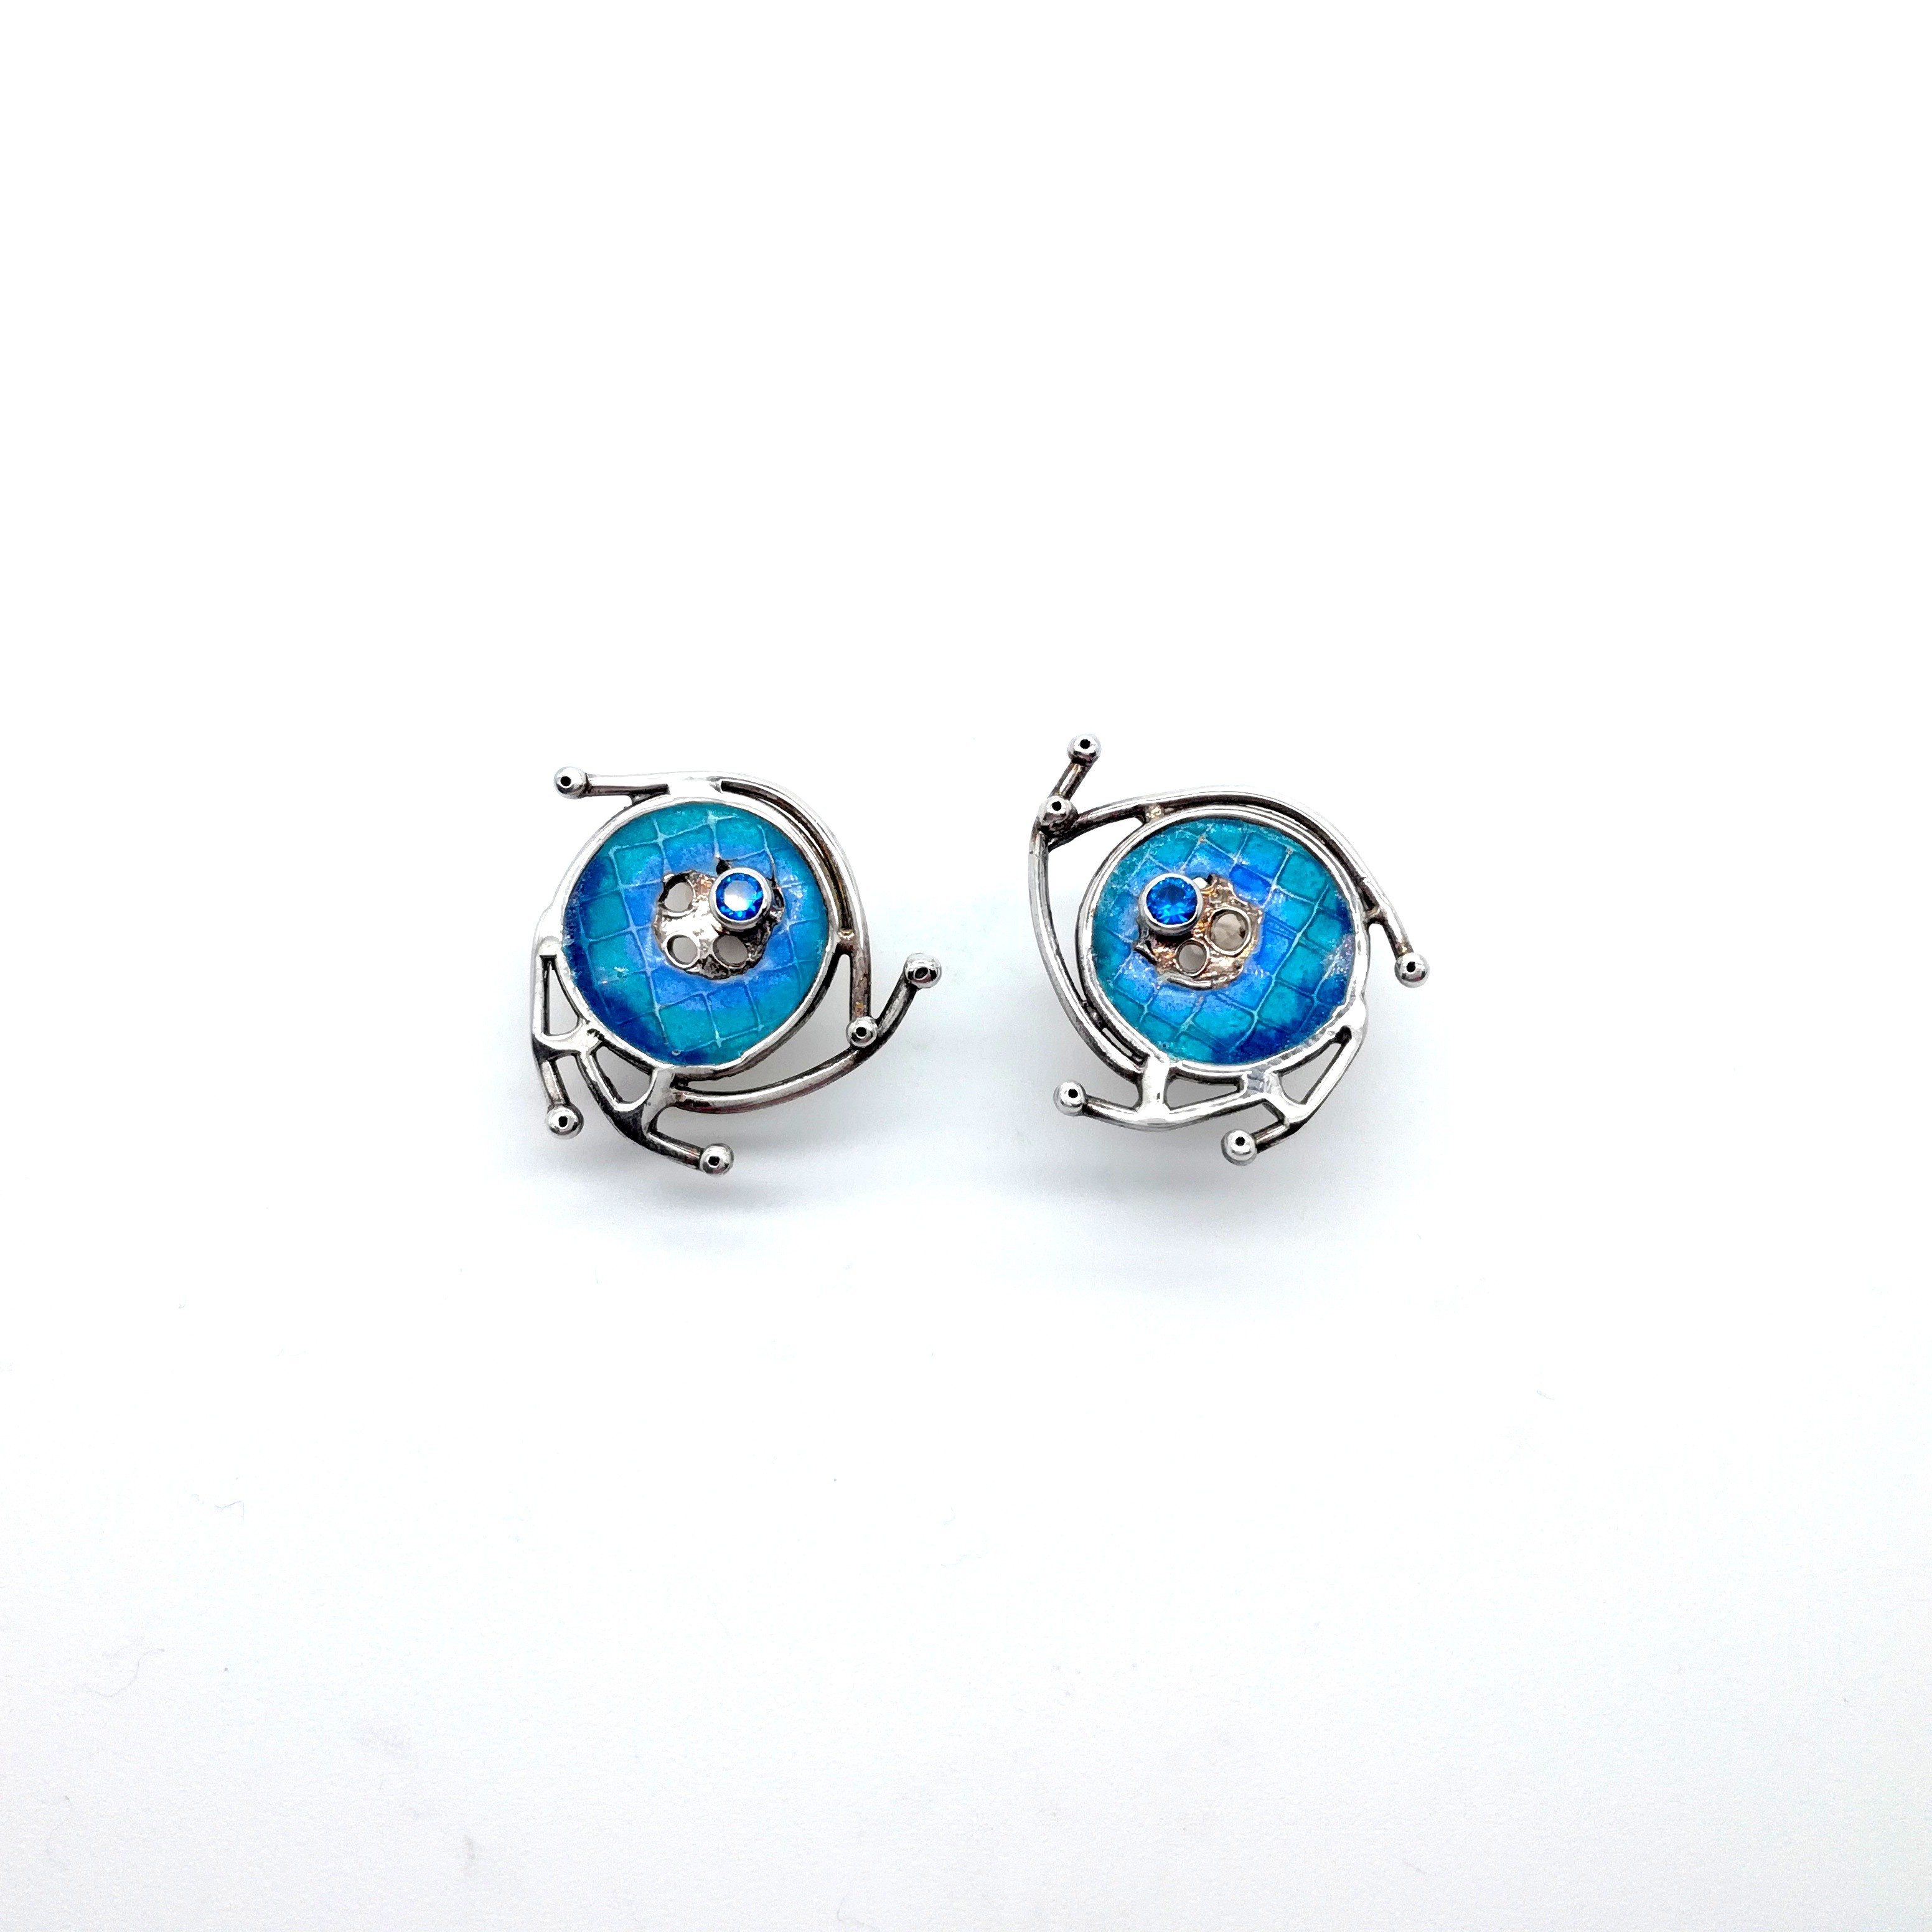 Silver earrings 925 with enamel and synthetic stones